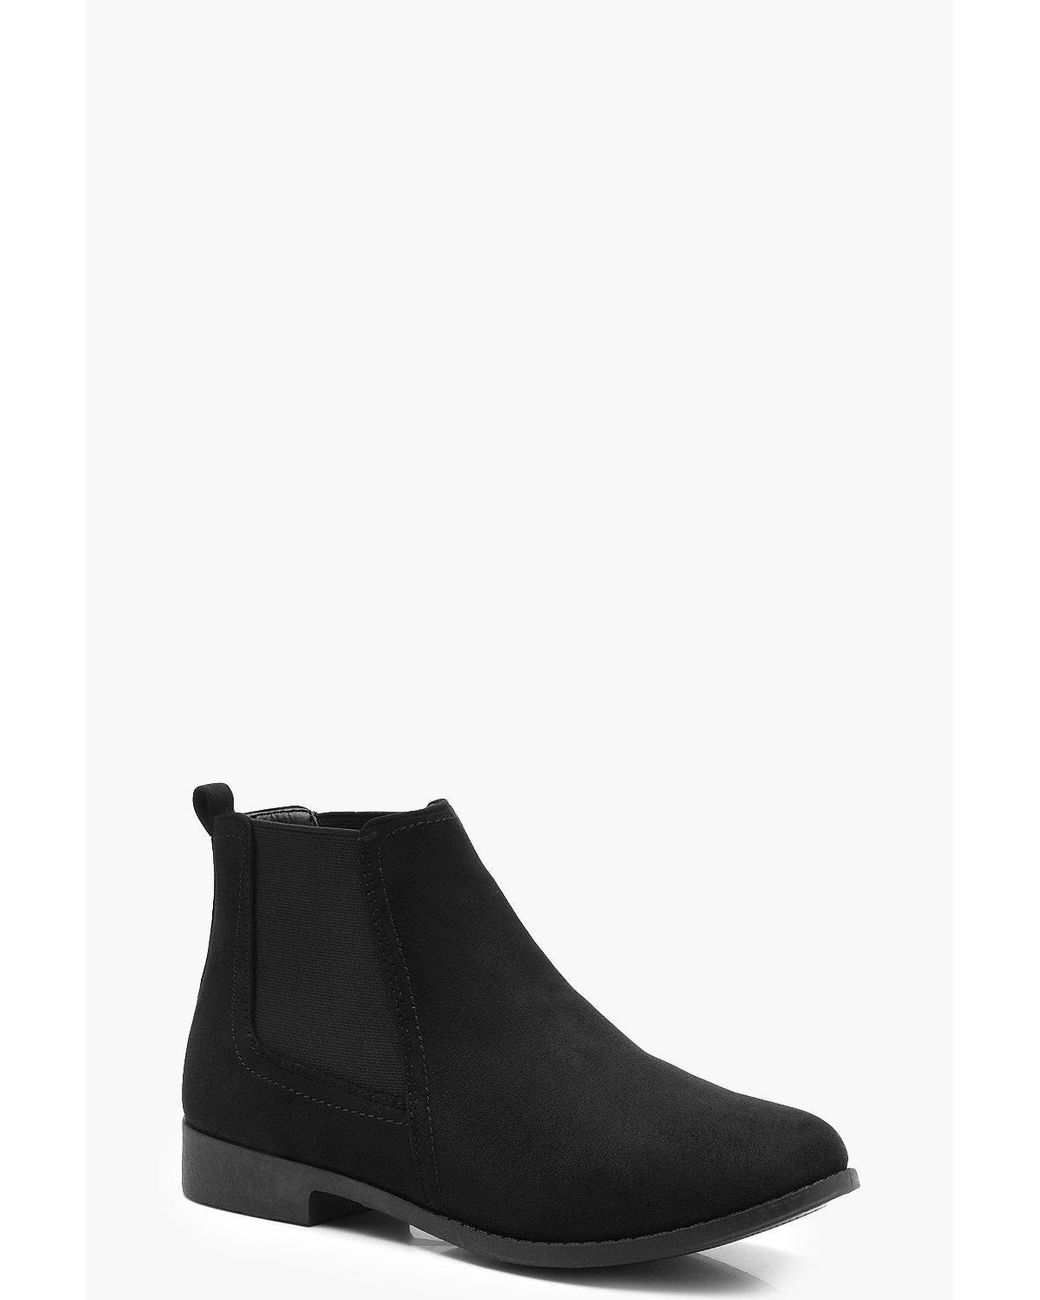 Boohoo Suedette Flat Chelsea Boots in